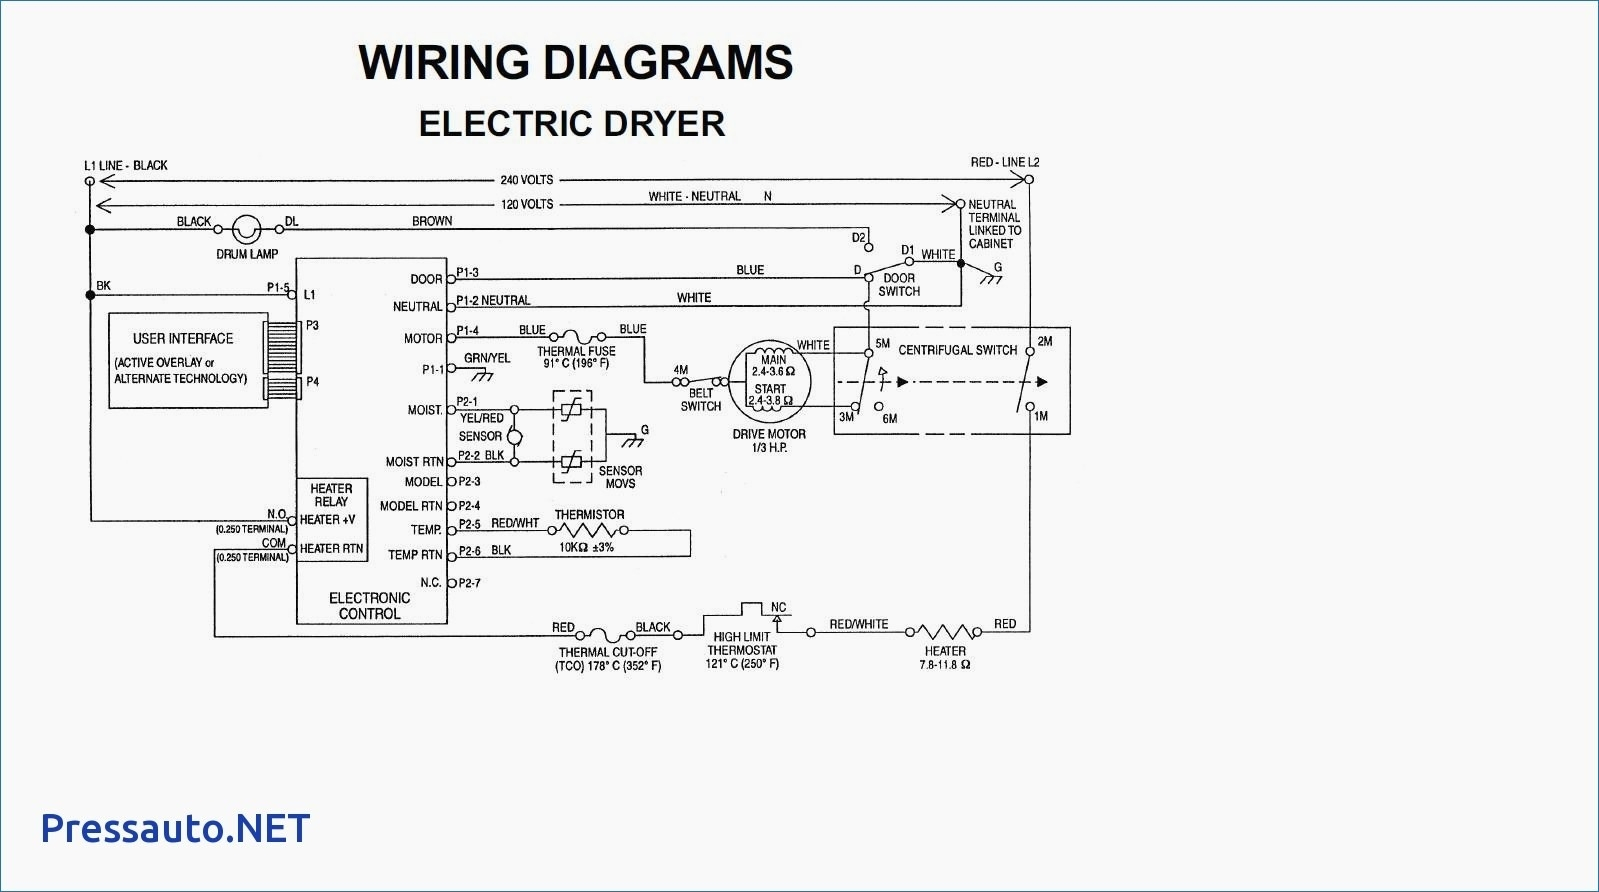 wiring diagram for whirlpool dryer heating element Collection-Troubleshoot Whirlpool Dryer Image Collections Free For Estate Within Wiring Diagram 9-n